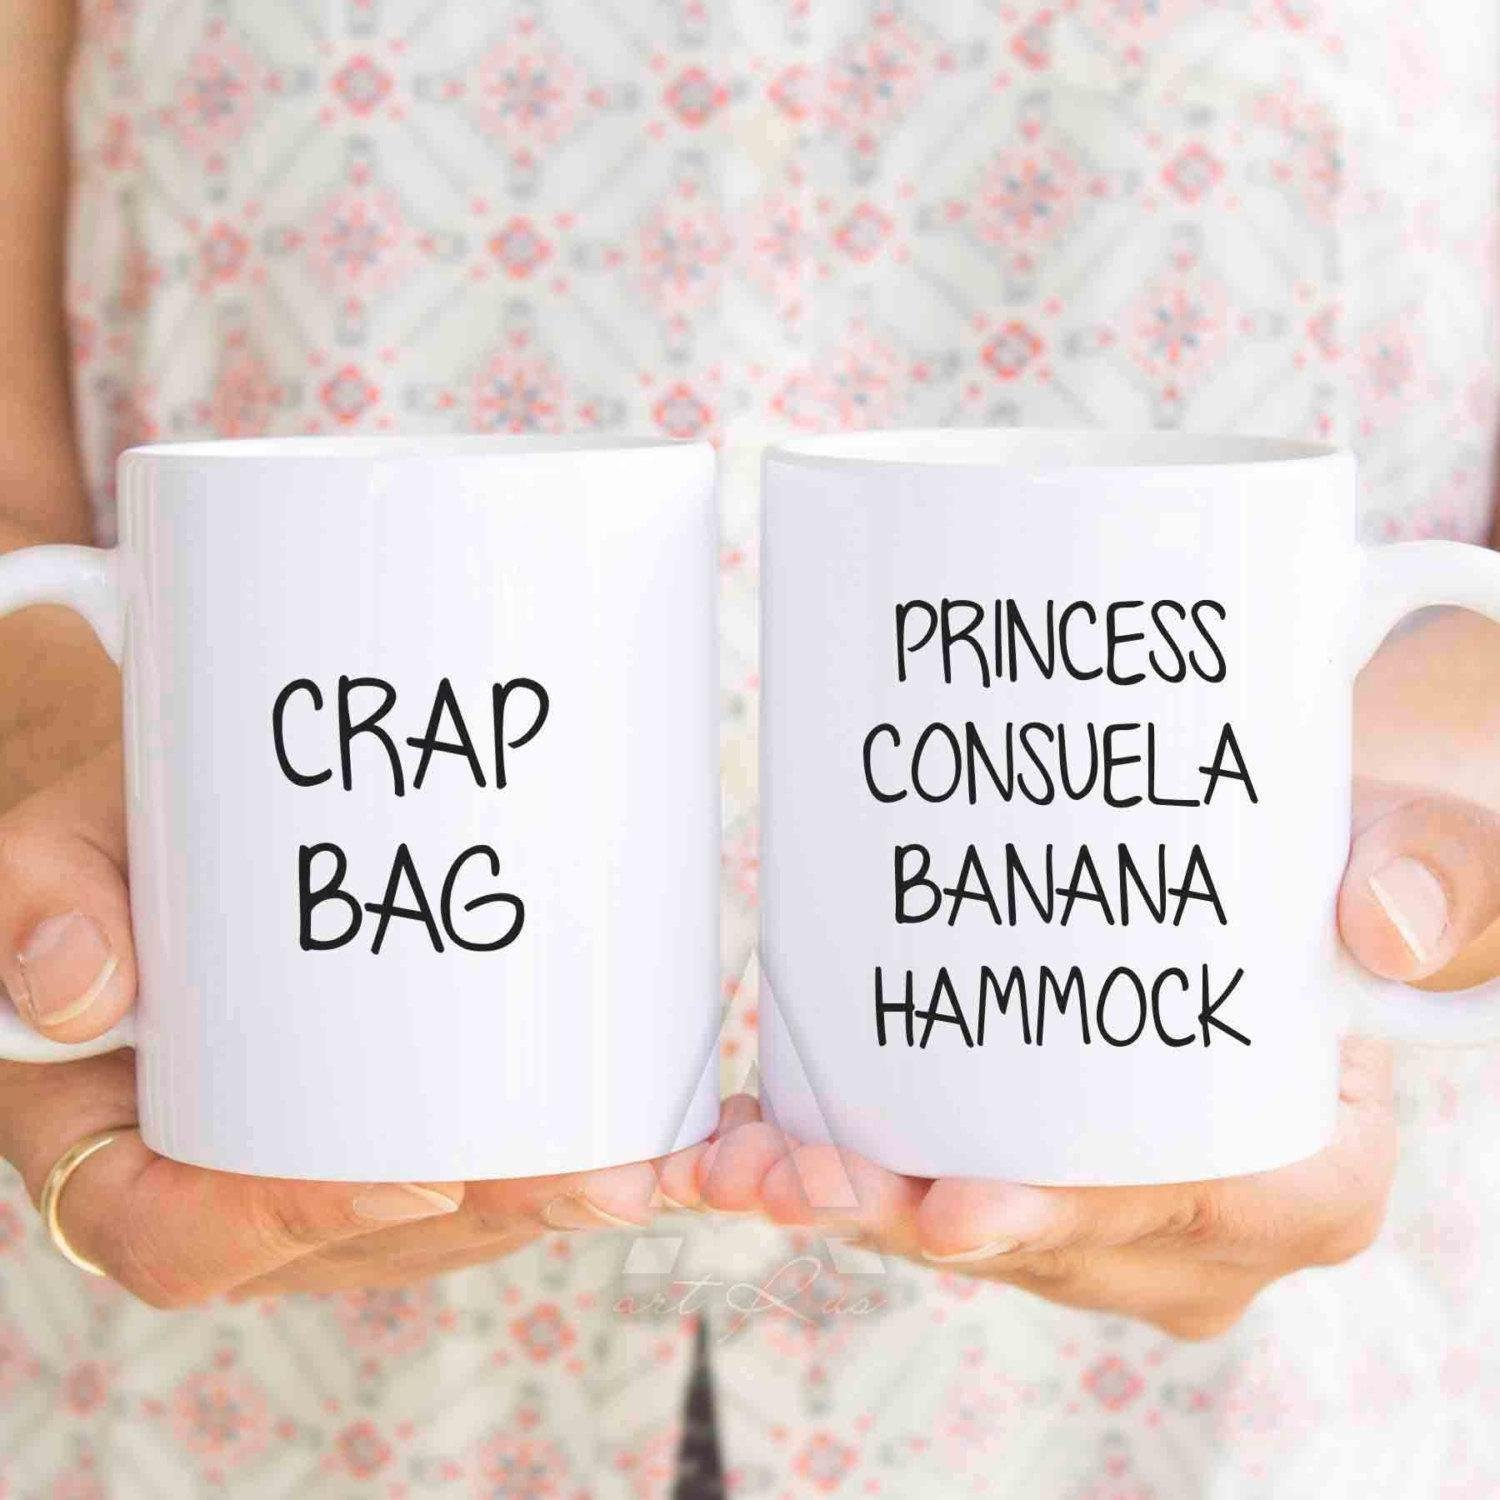 princess consuela banana hammock, Funny Couple Mugs, valentines day gift, His and Hers Coffee Mugs, anniversary gifts, couple mugs, MU208